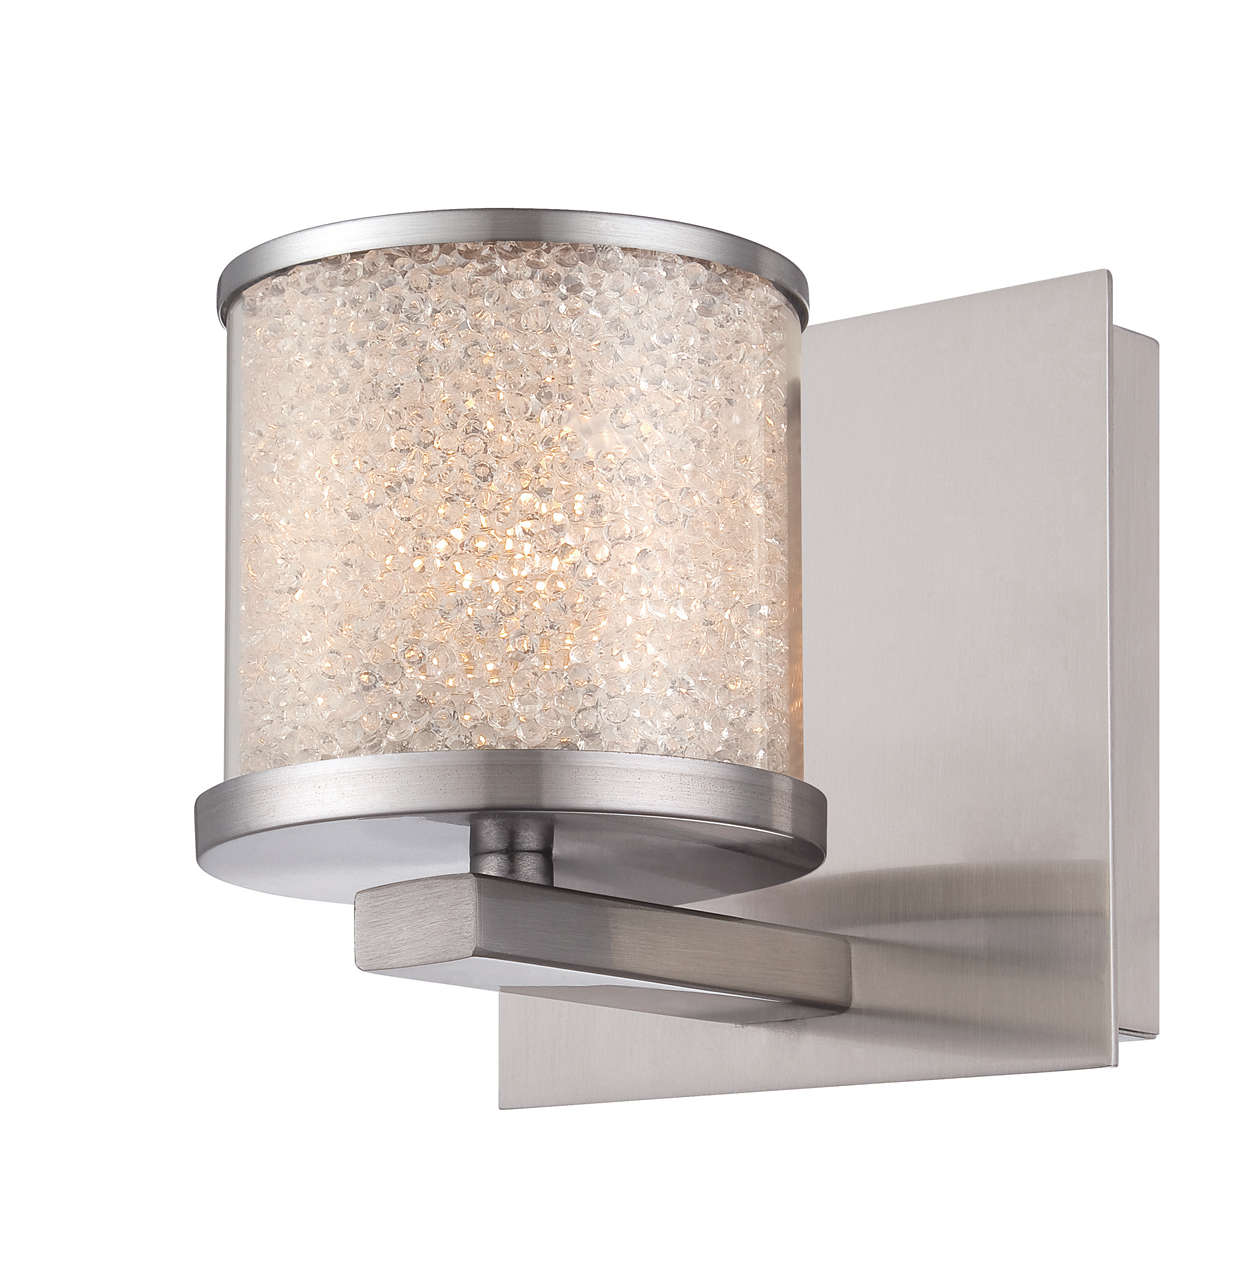 Tiffany 1-light wall sconce in Satin Nickel finish